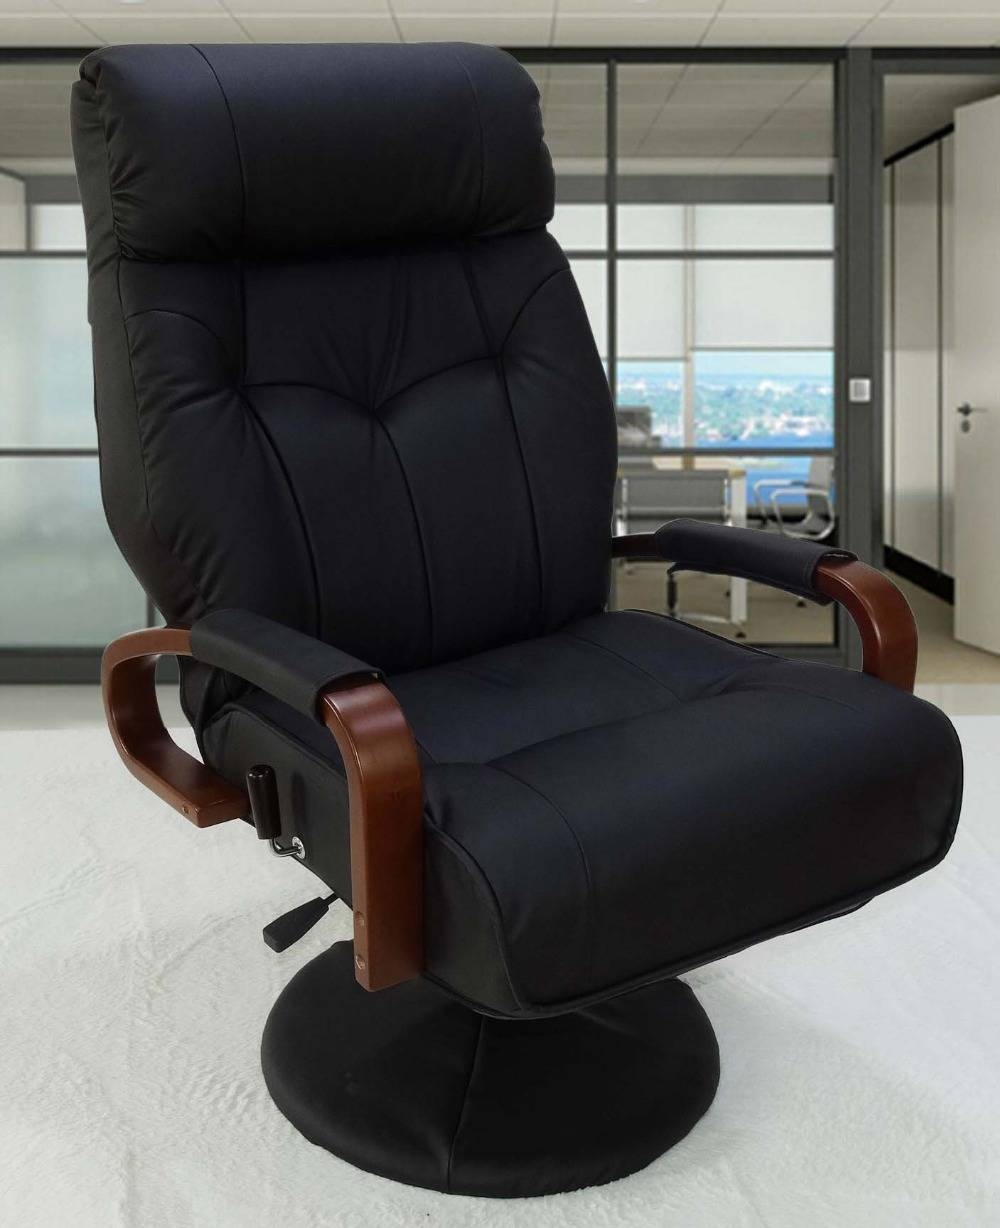 Online Get Cheap Leather Recliner Chair -Aliexpress | Alibaba regarding Sofa Chair Recliner (Image 19 of 30)